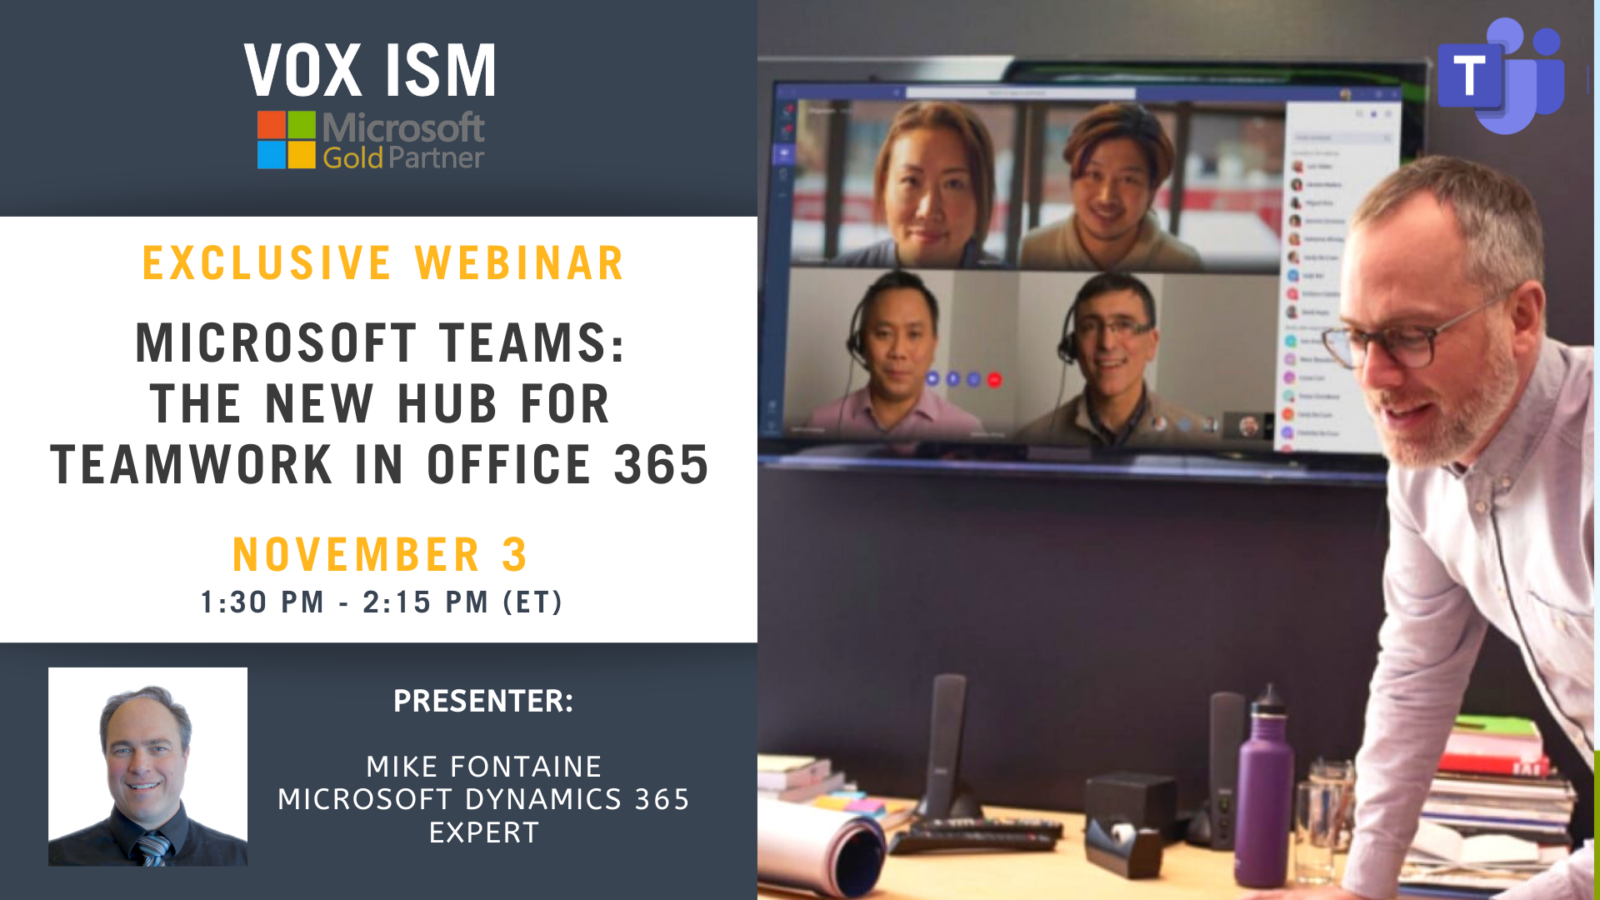 Microsoft Teams - The New Hub for Teamwork in Office 365 - November 3 - Webinar